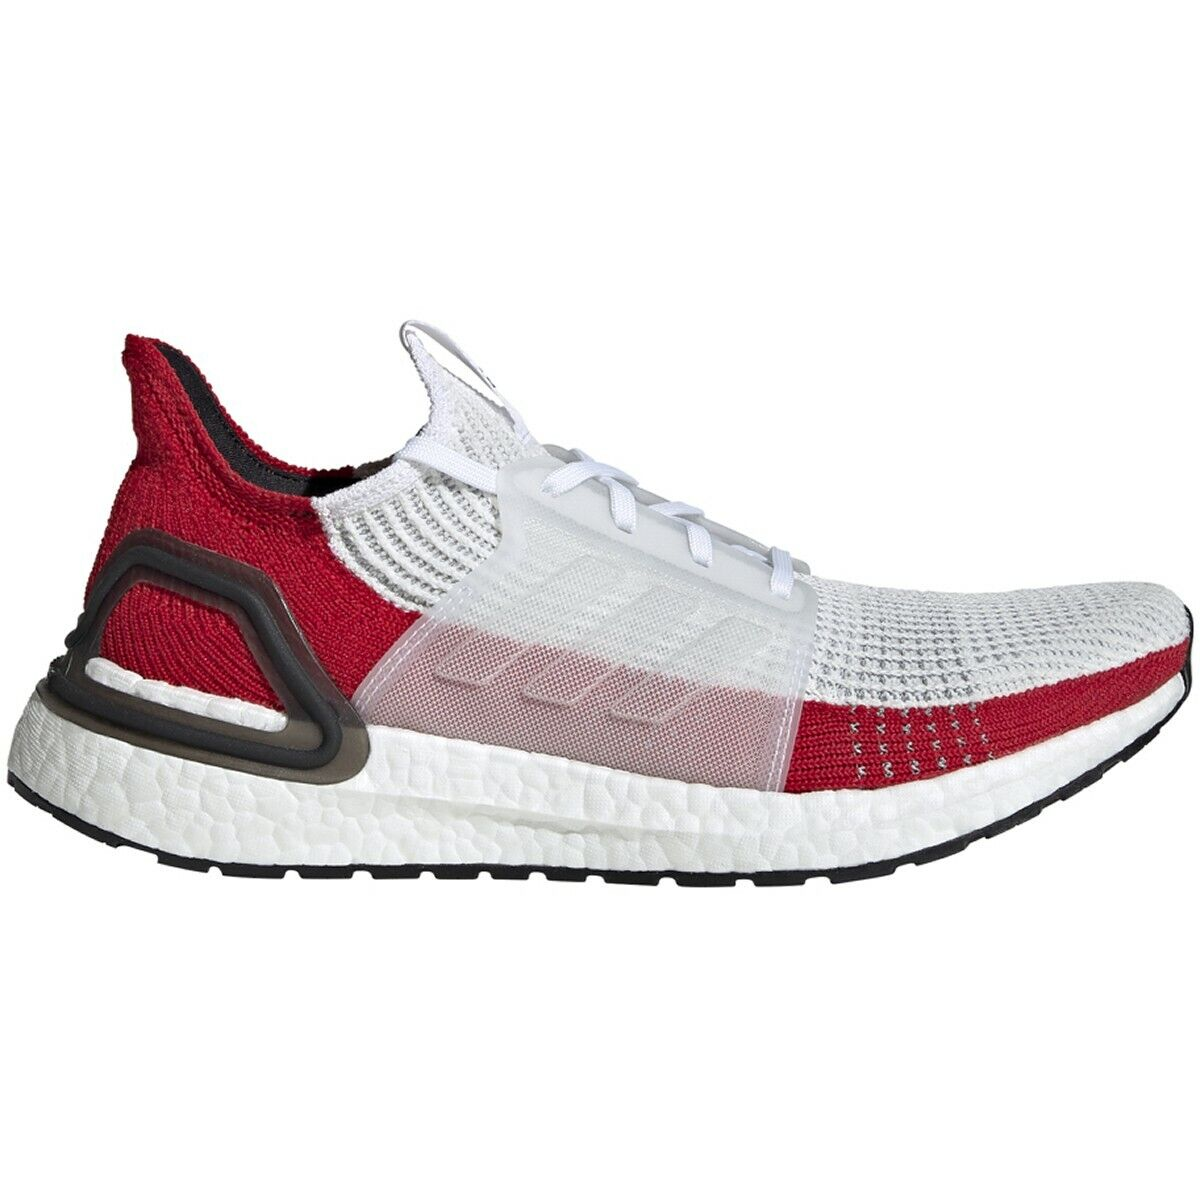 Adidas Men's Adidas Ultra Boost 19 - NEW IN BOX - FREE SHIPPING - Red - EF1341+